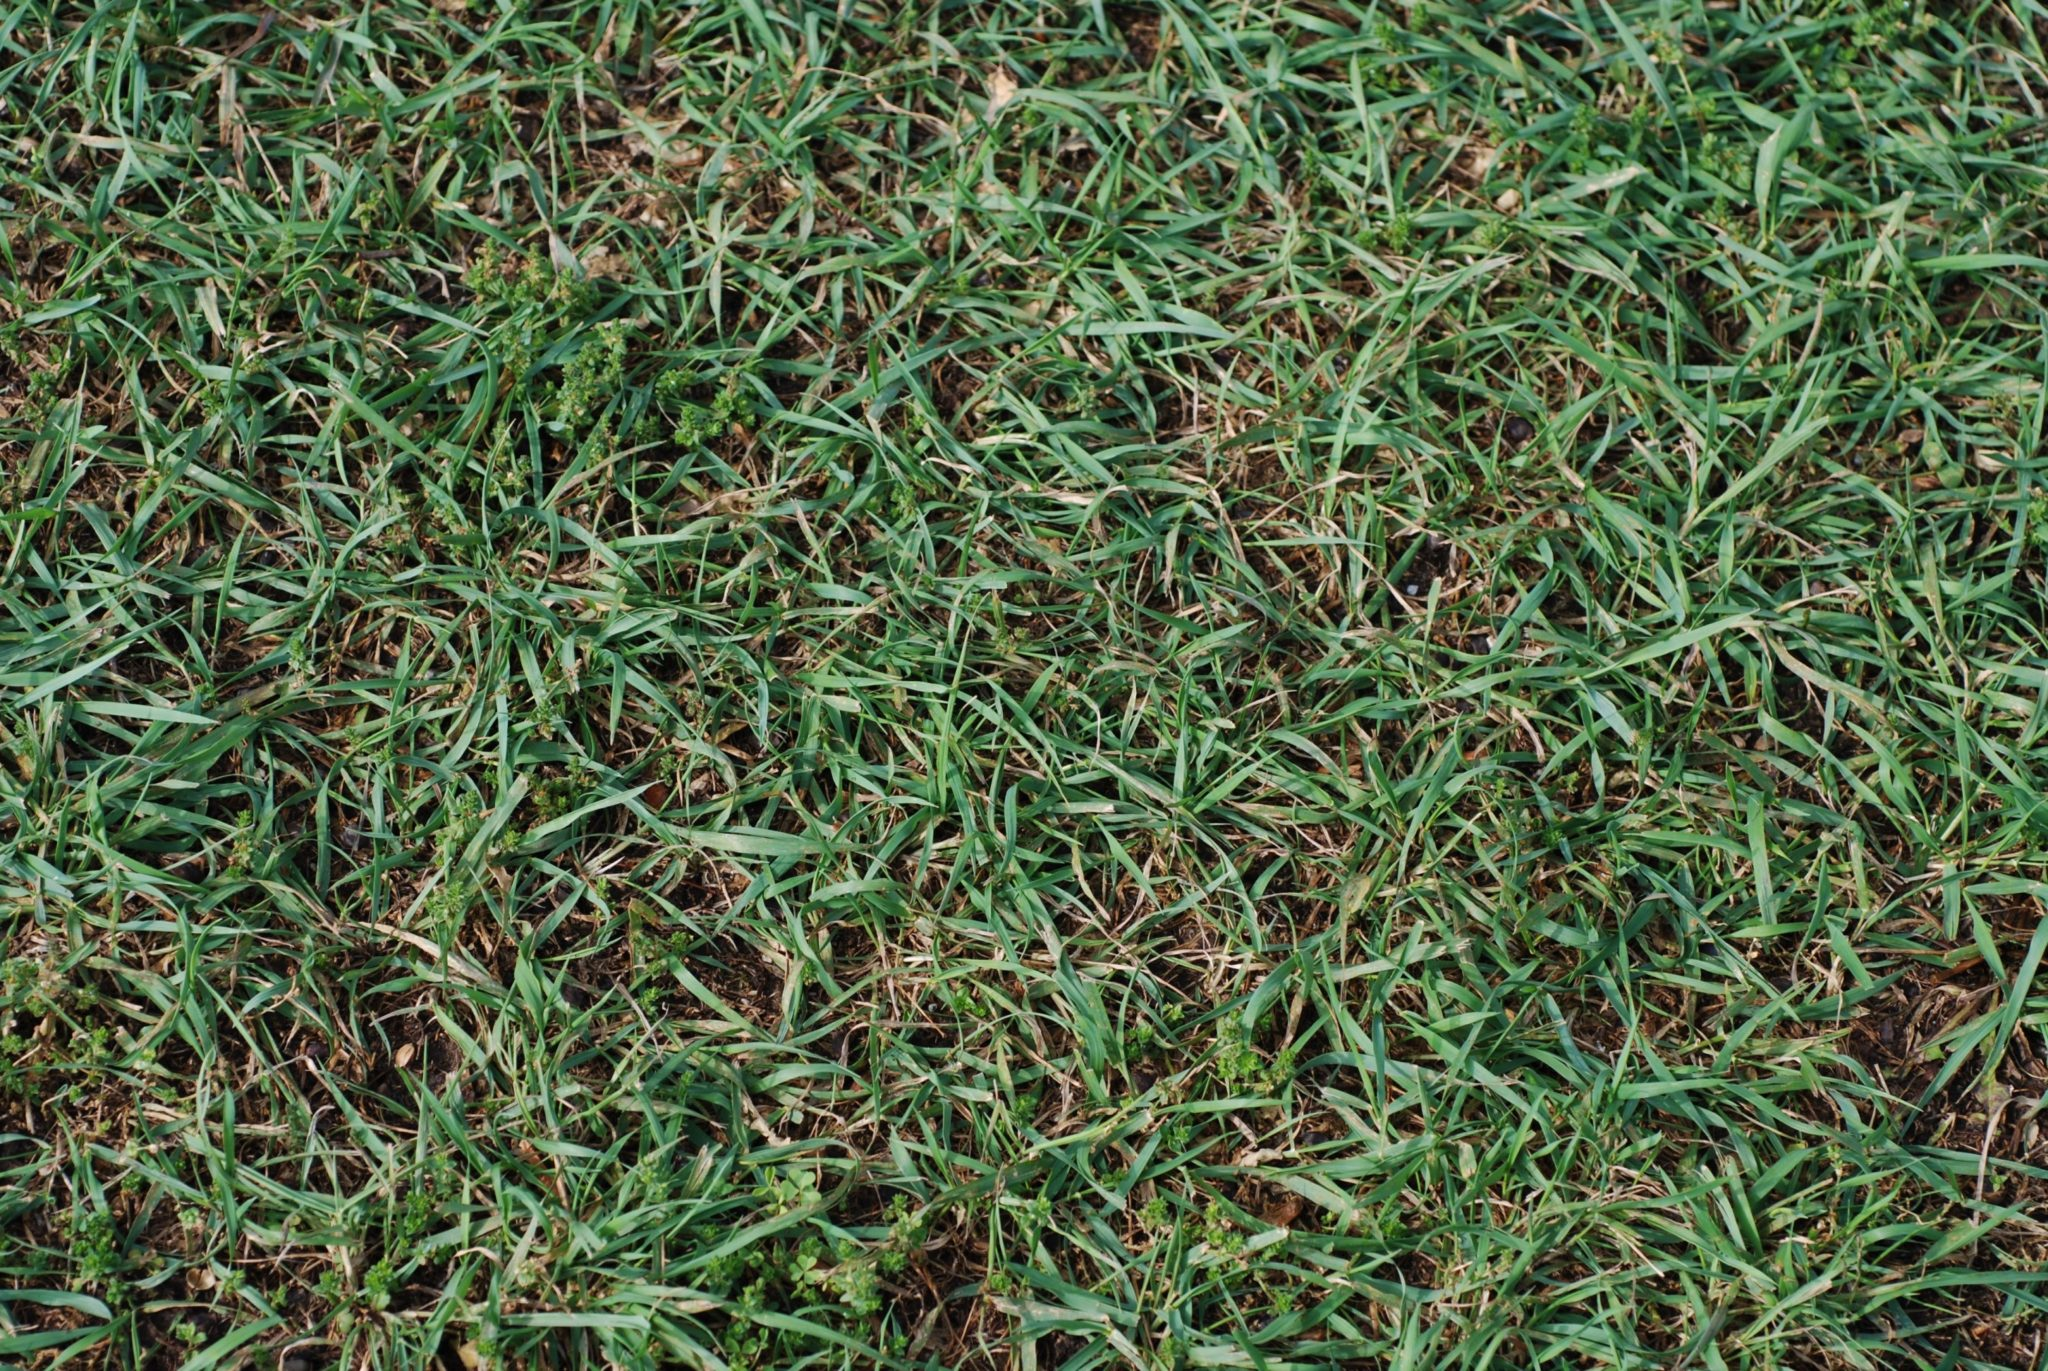 Figure 2. Quackgrass patch. (Photo Credit: Dr. Aaron Patton)